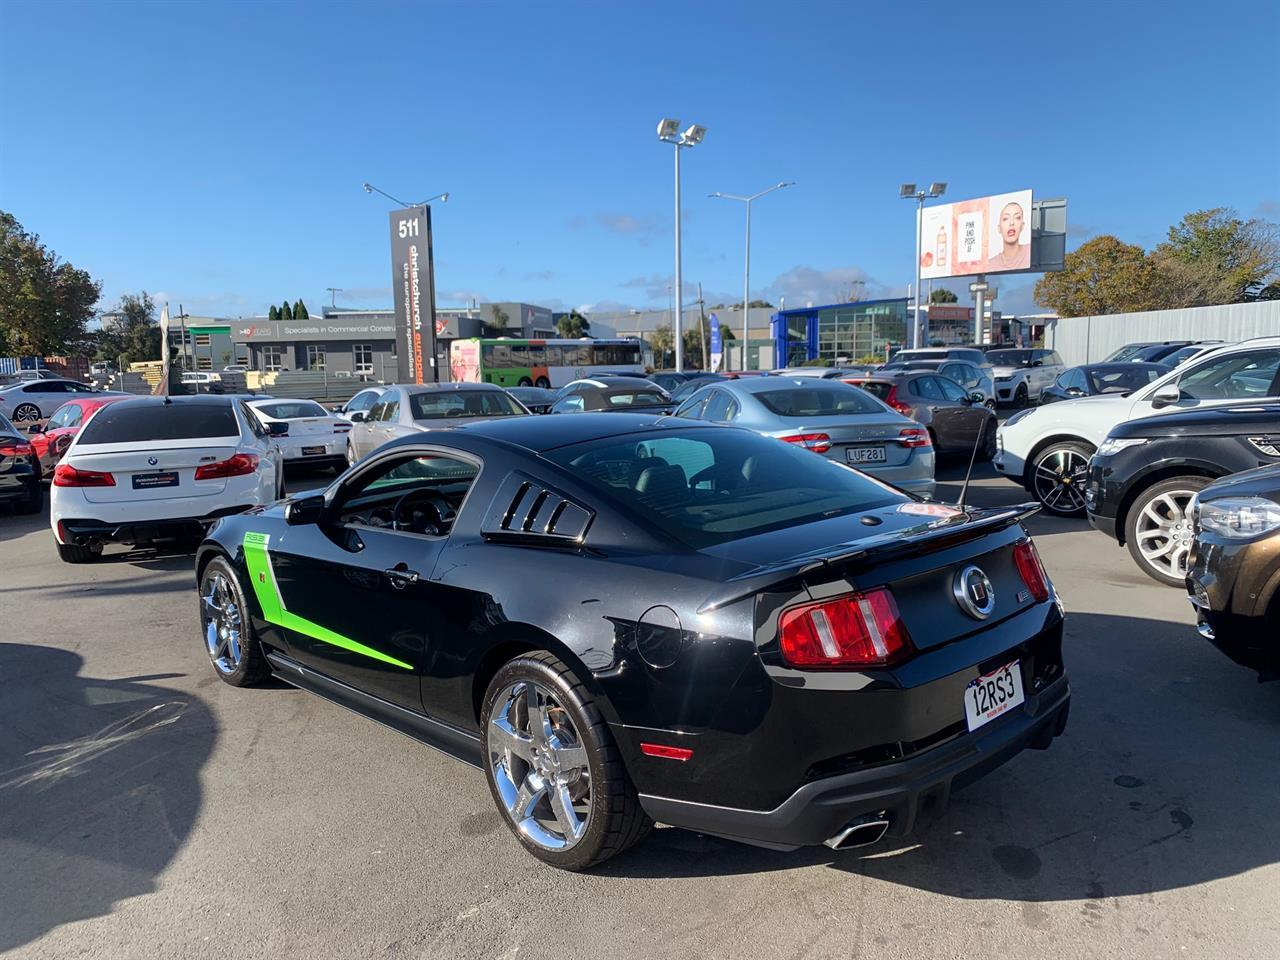 image-3, 2012 Ford Mustang RS3 Roushcharged 540 BHP at Christchurch